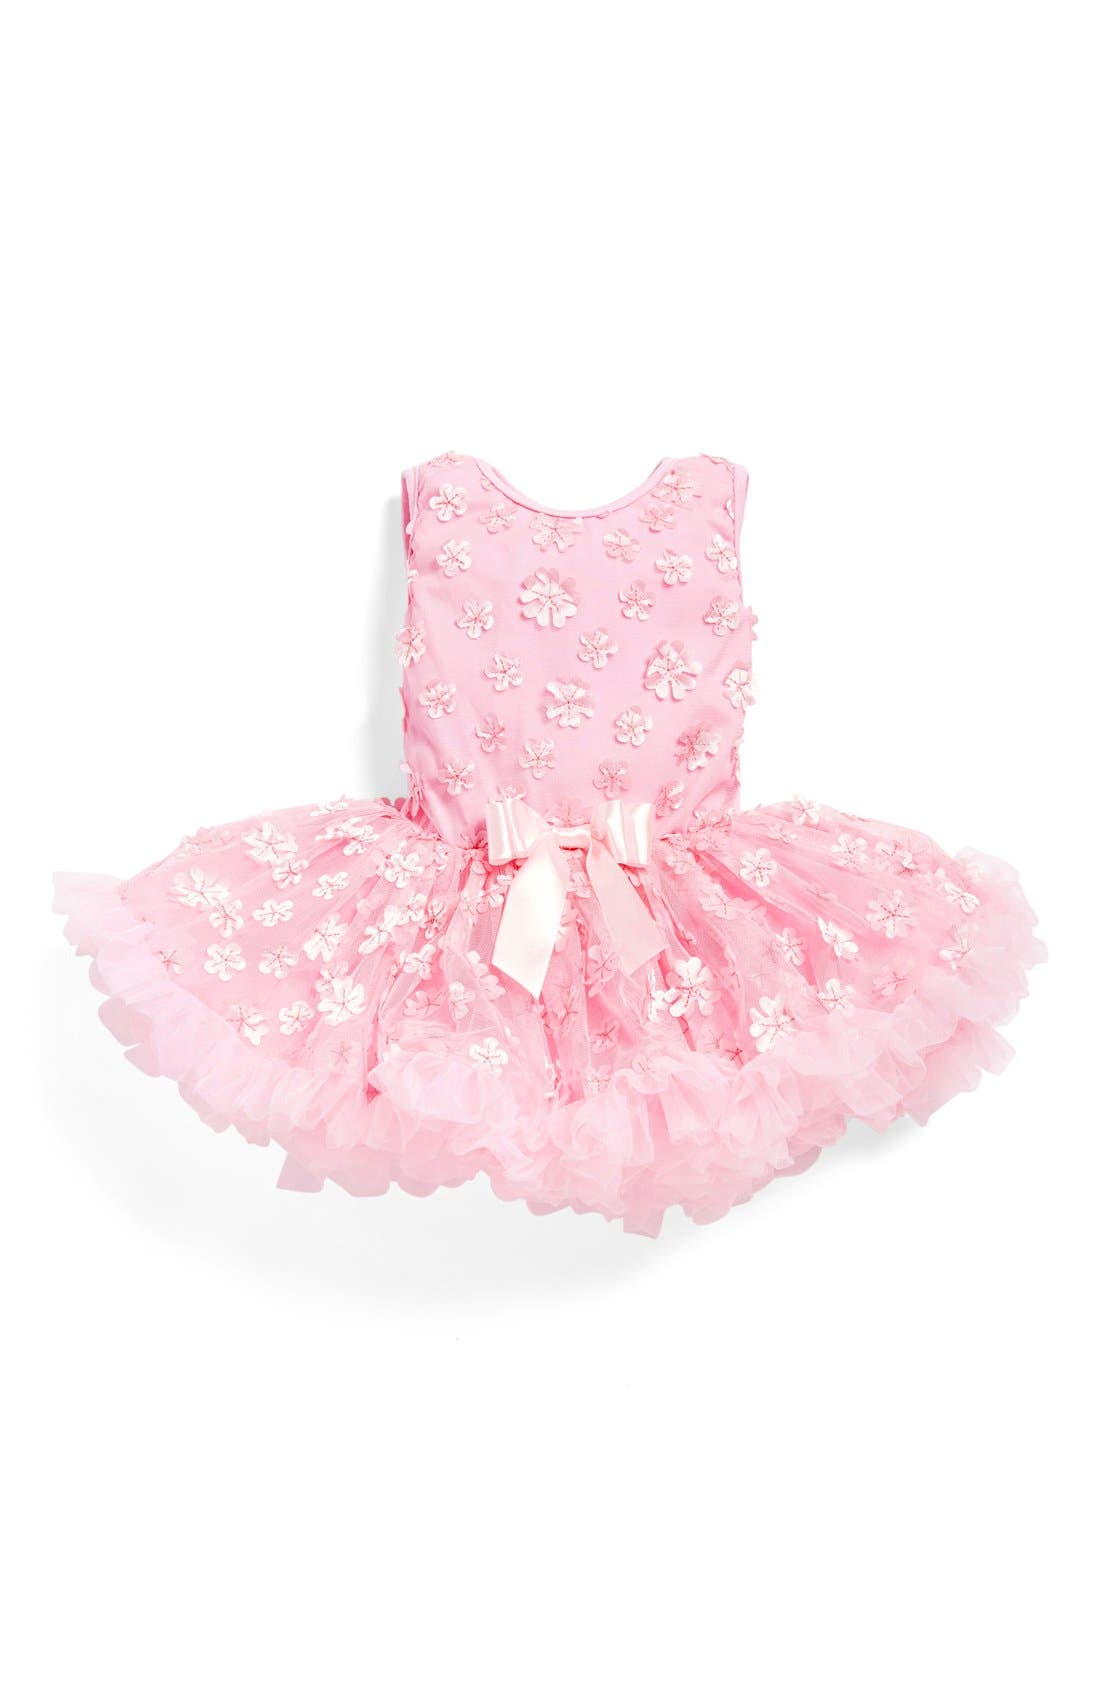 Alternate Image 1 Selected - Popatu 'Mini Flower' Pettidress (Baby Girls)